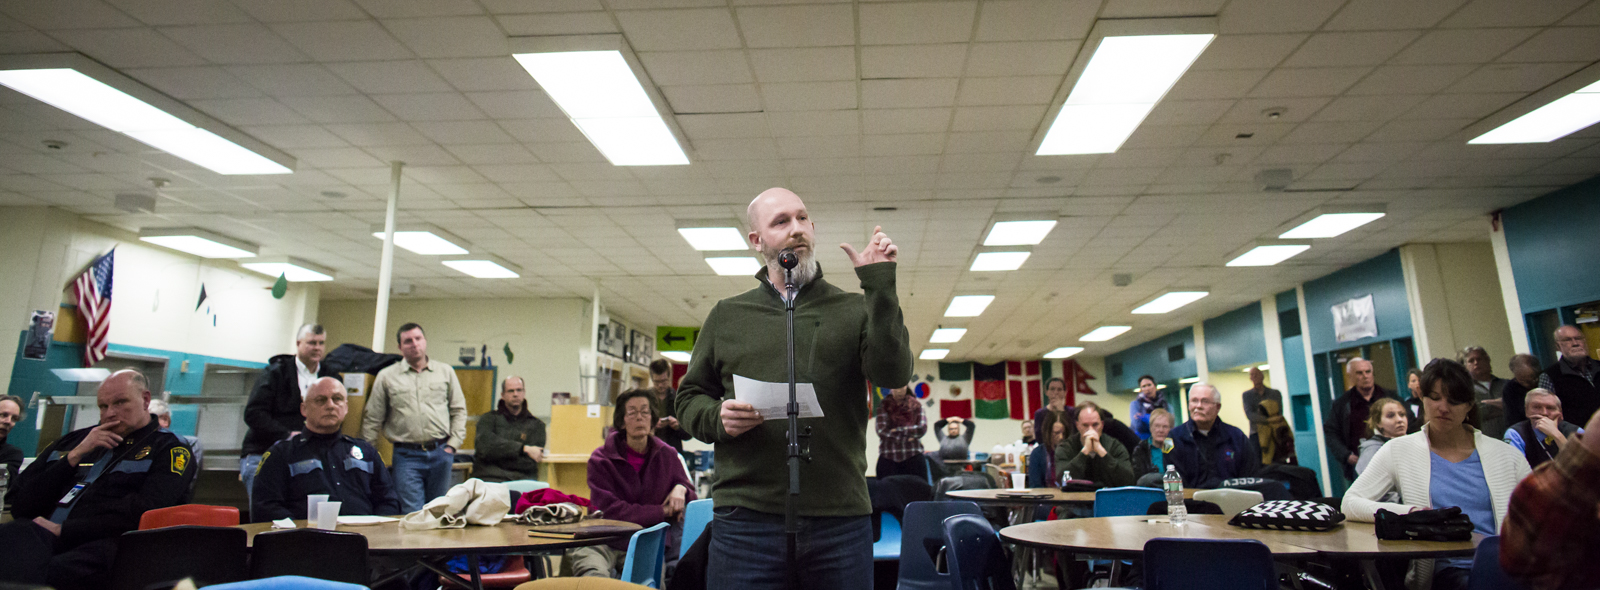 """Michael Versluys, an Essex Junction resident, speaks in favor of marijuana legalization during a community forum at Essex High School in Essex Junction, Vermont on Wednesday, March 2, 2016. """"For me, marijuana is a social justice issue,"""" Versluys, a father of three, said. By Monica Donovan for Heady Vermont"""